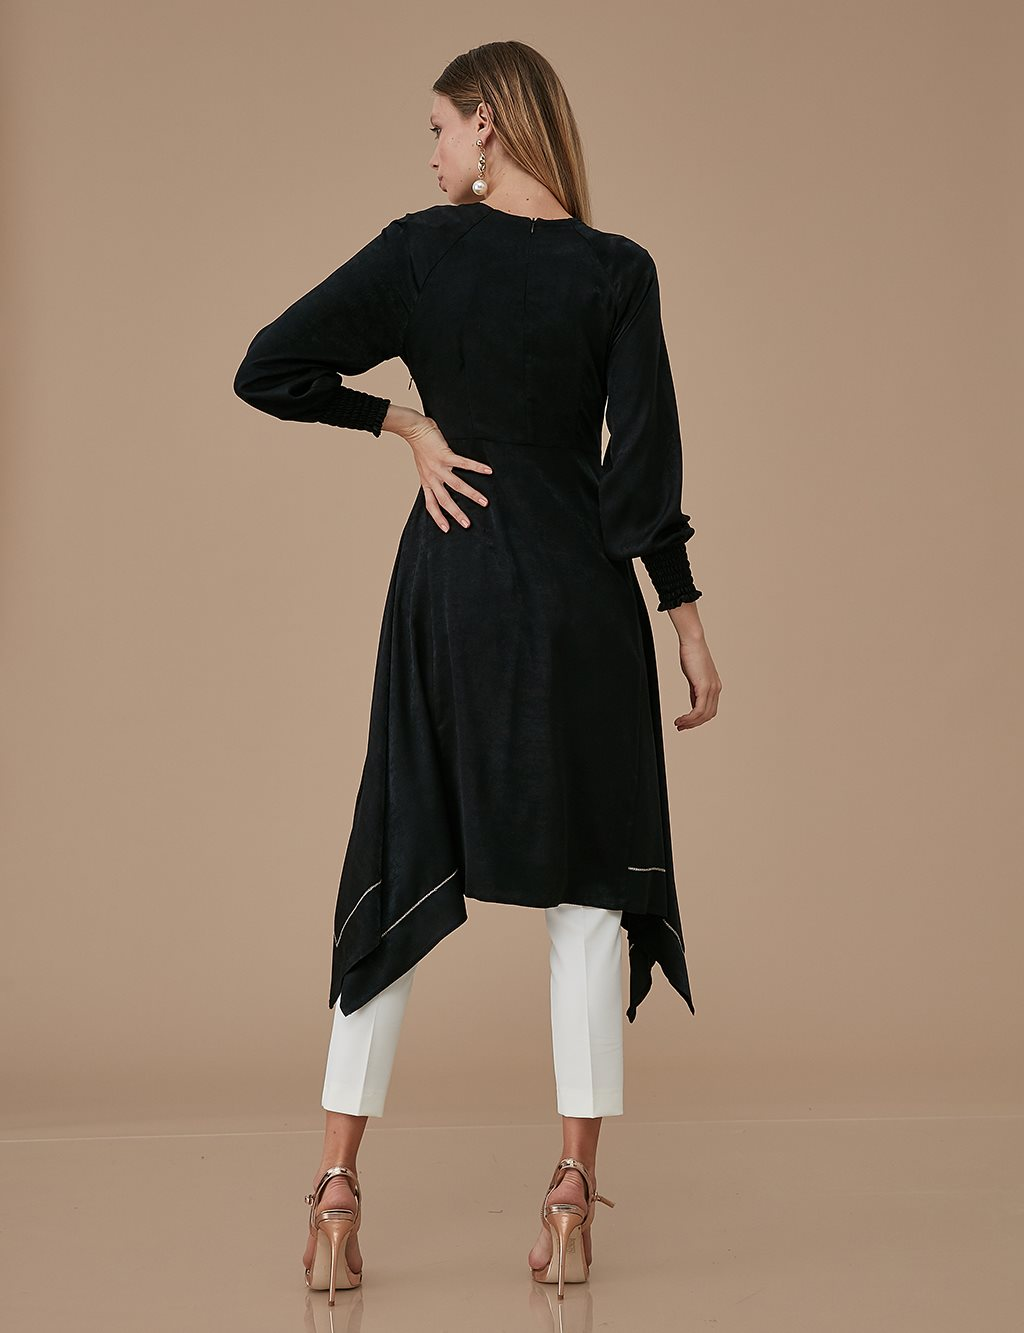 Ruched Sleeve Tunic Dress A9 21139 Black